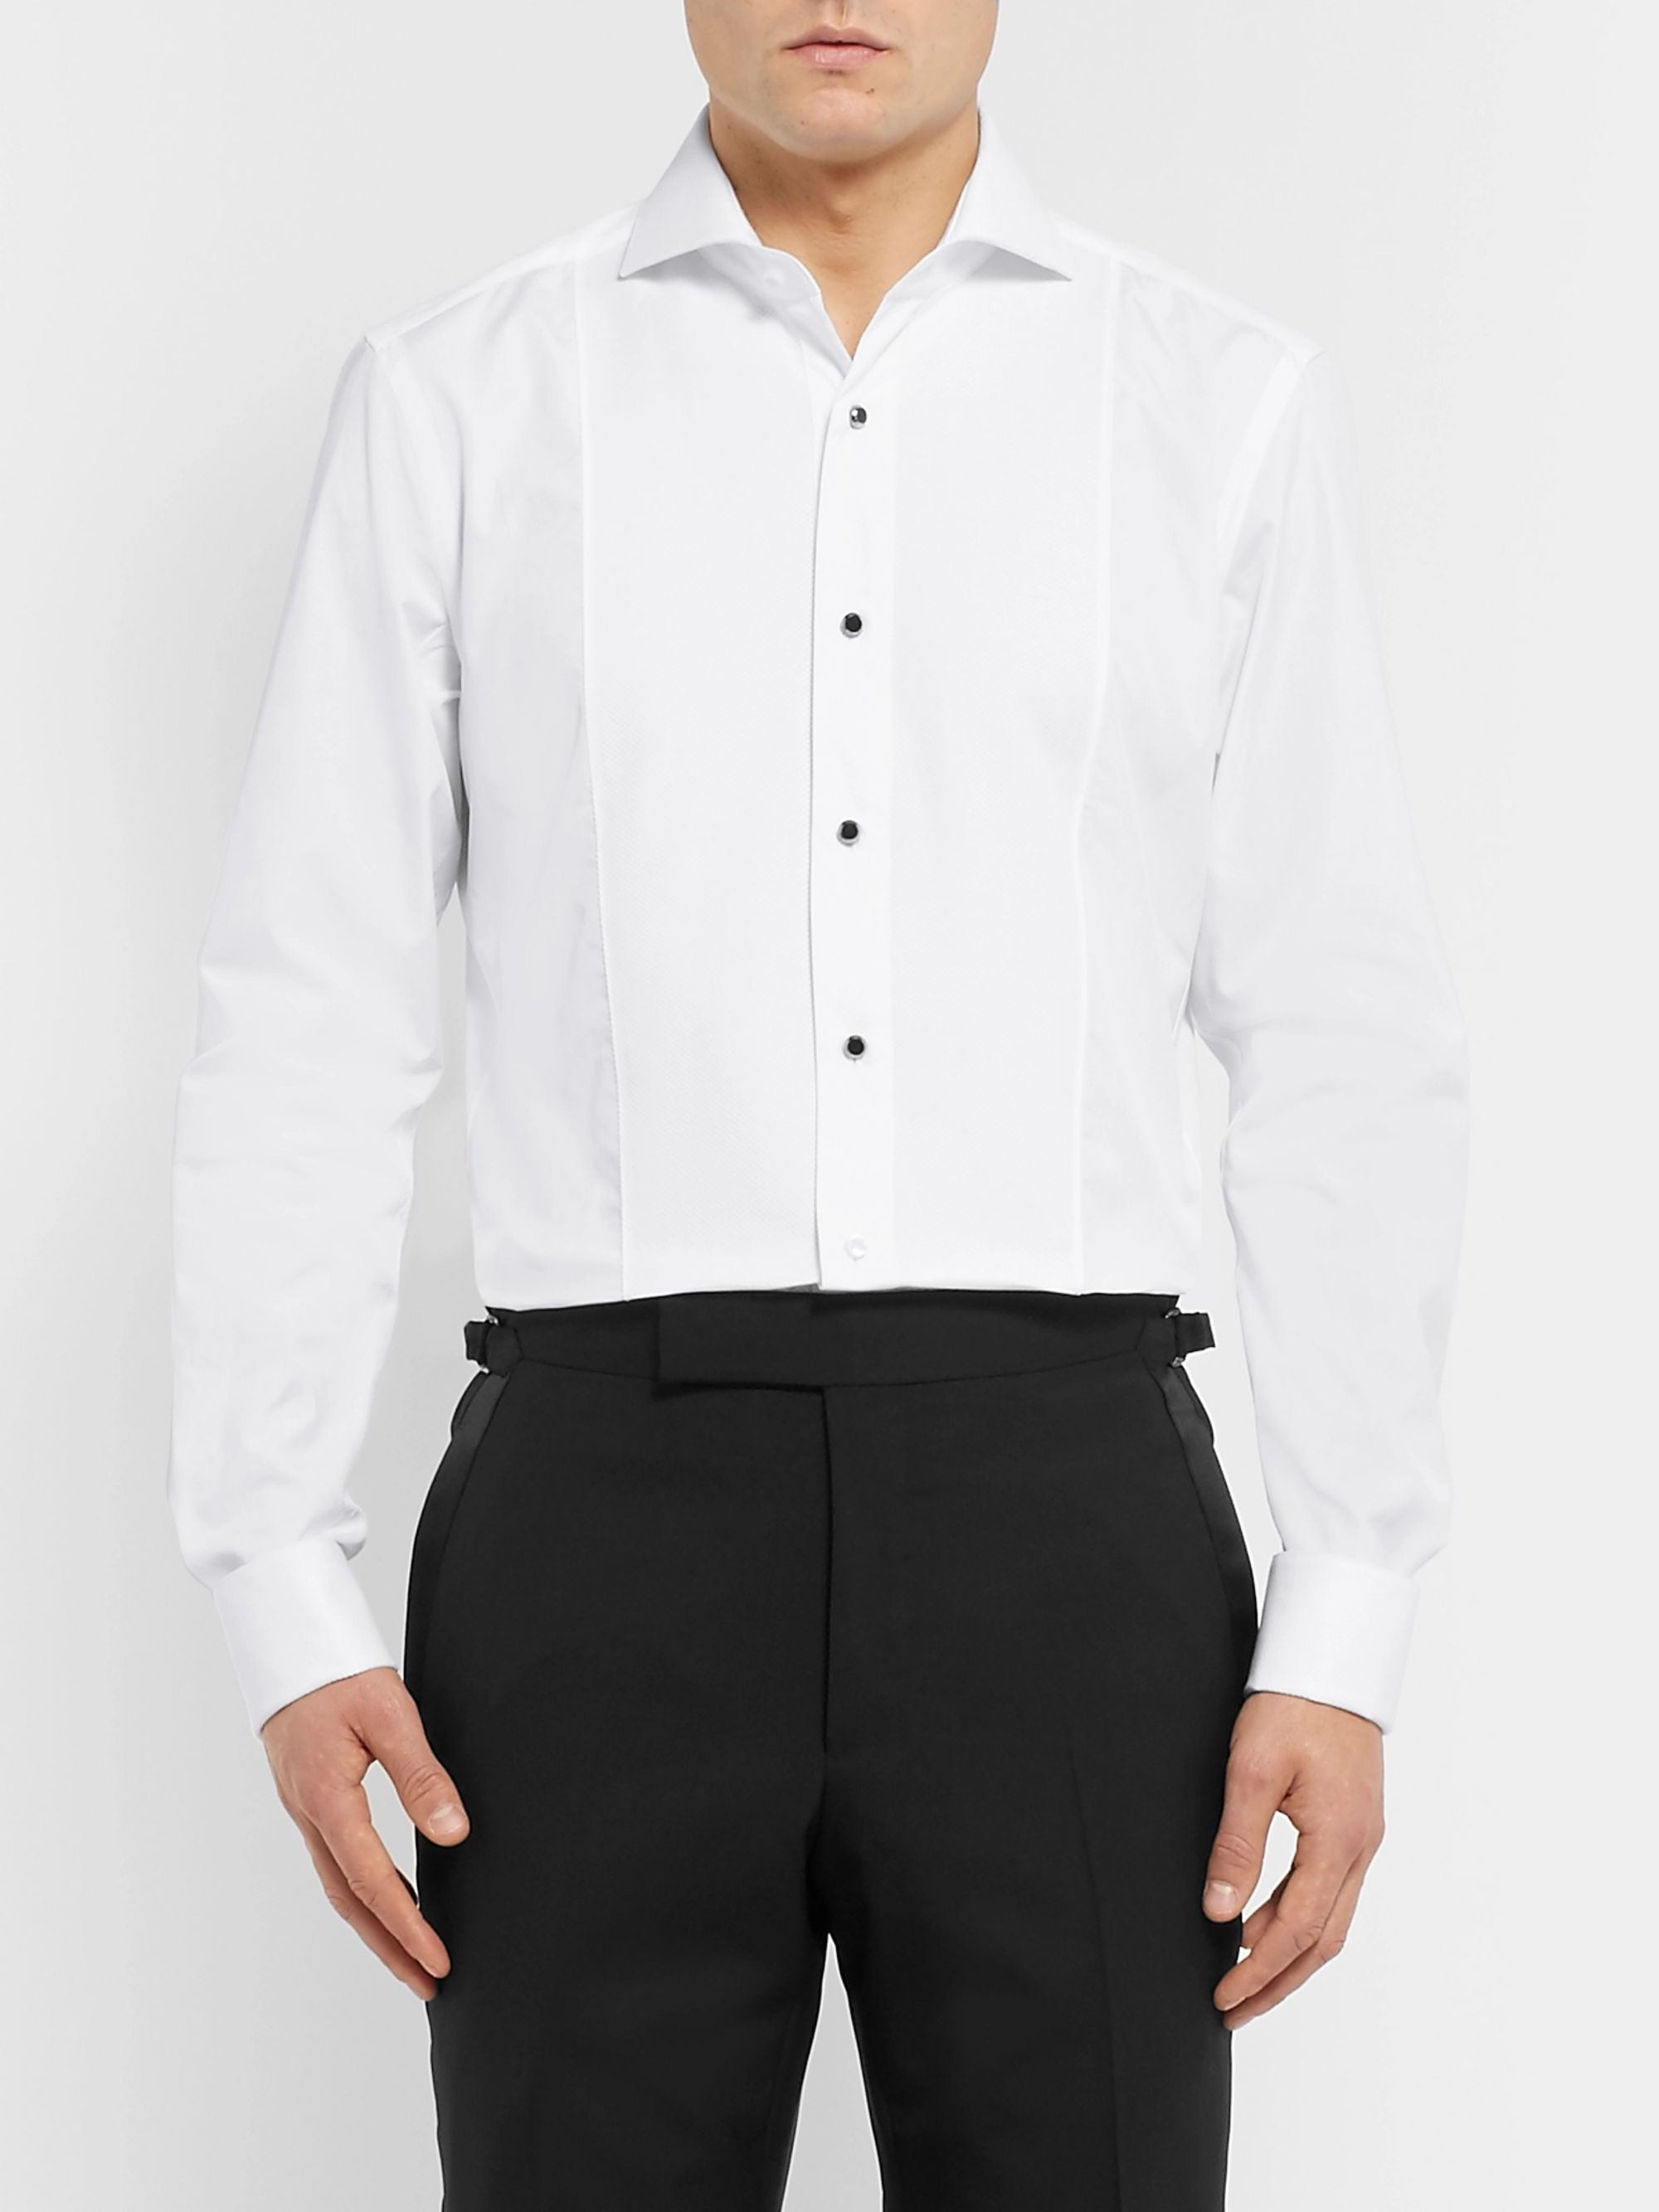 Hugo Boss White Slim-Fit Cutaway-Collar Bib-Front Cotton Shirt